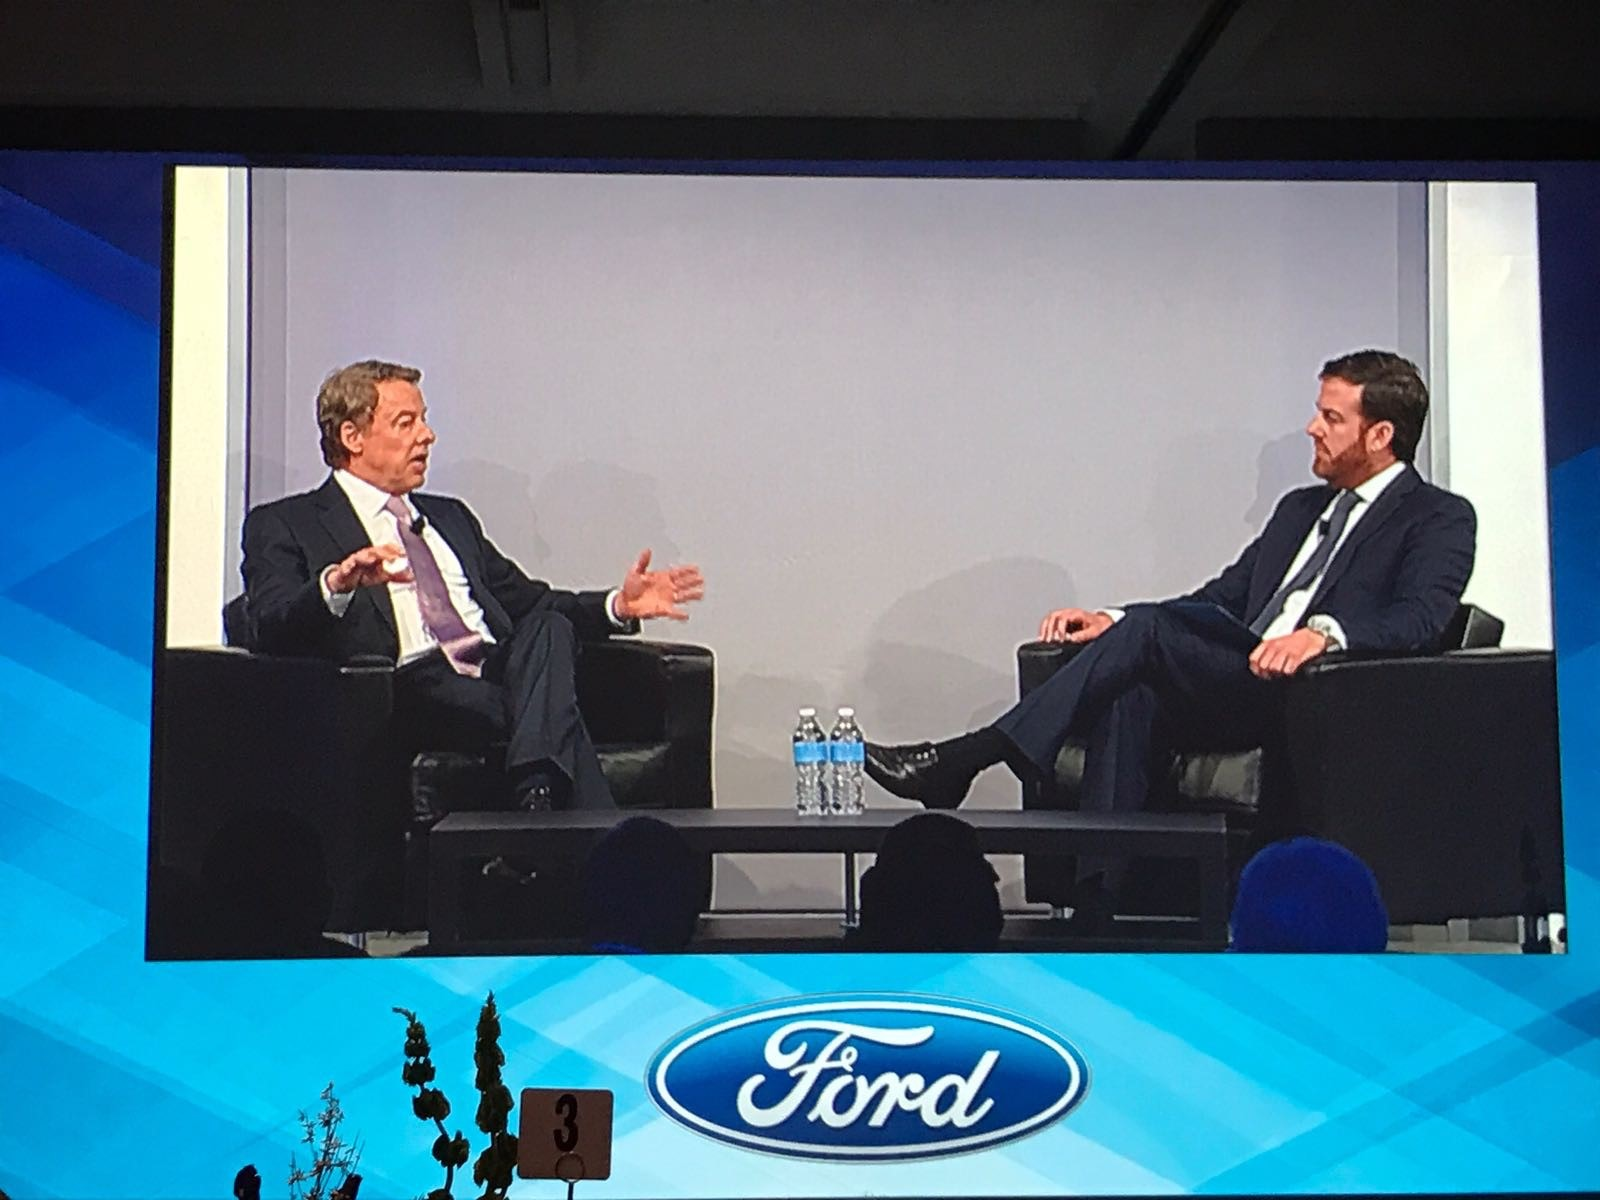 Autonews Dinner in Detroit. William Clay Ford Jr., Executive Chairman of Ford and KC Crain, Executive Vice President of Ford Motor Company holding a fireside chat.